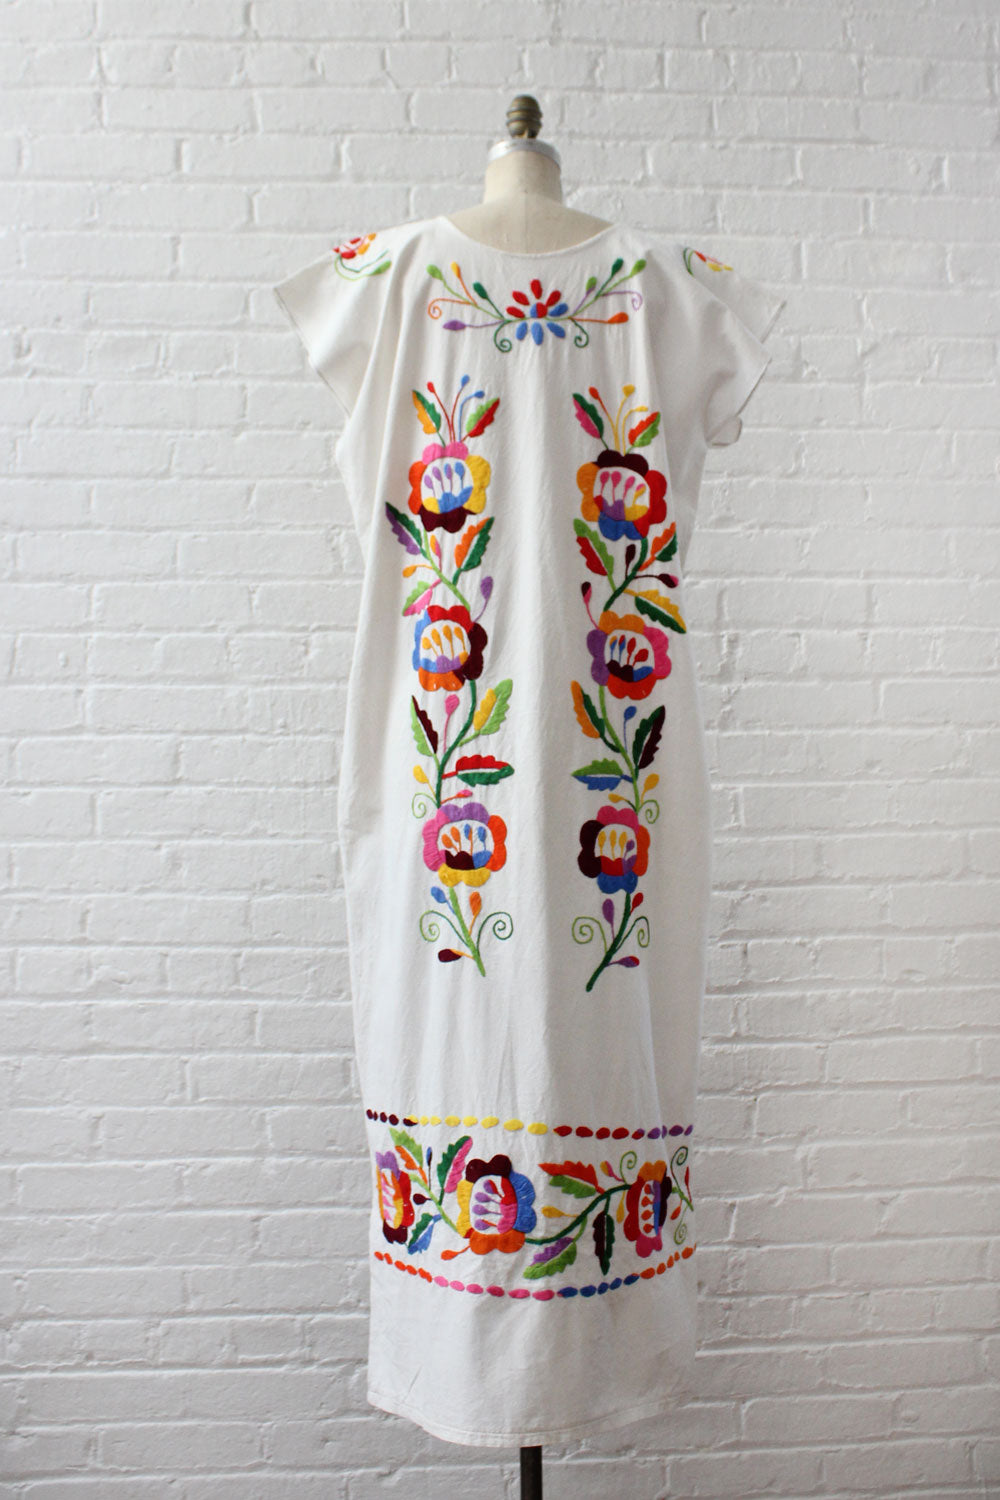 Dancing Floral Embroidered Dress S-L